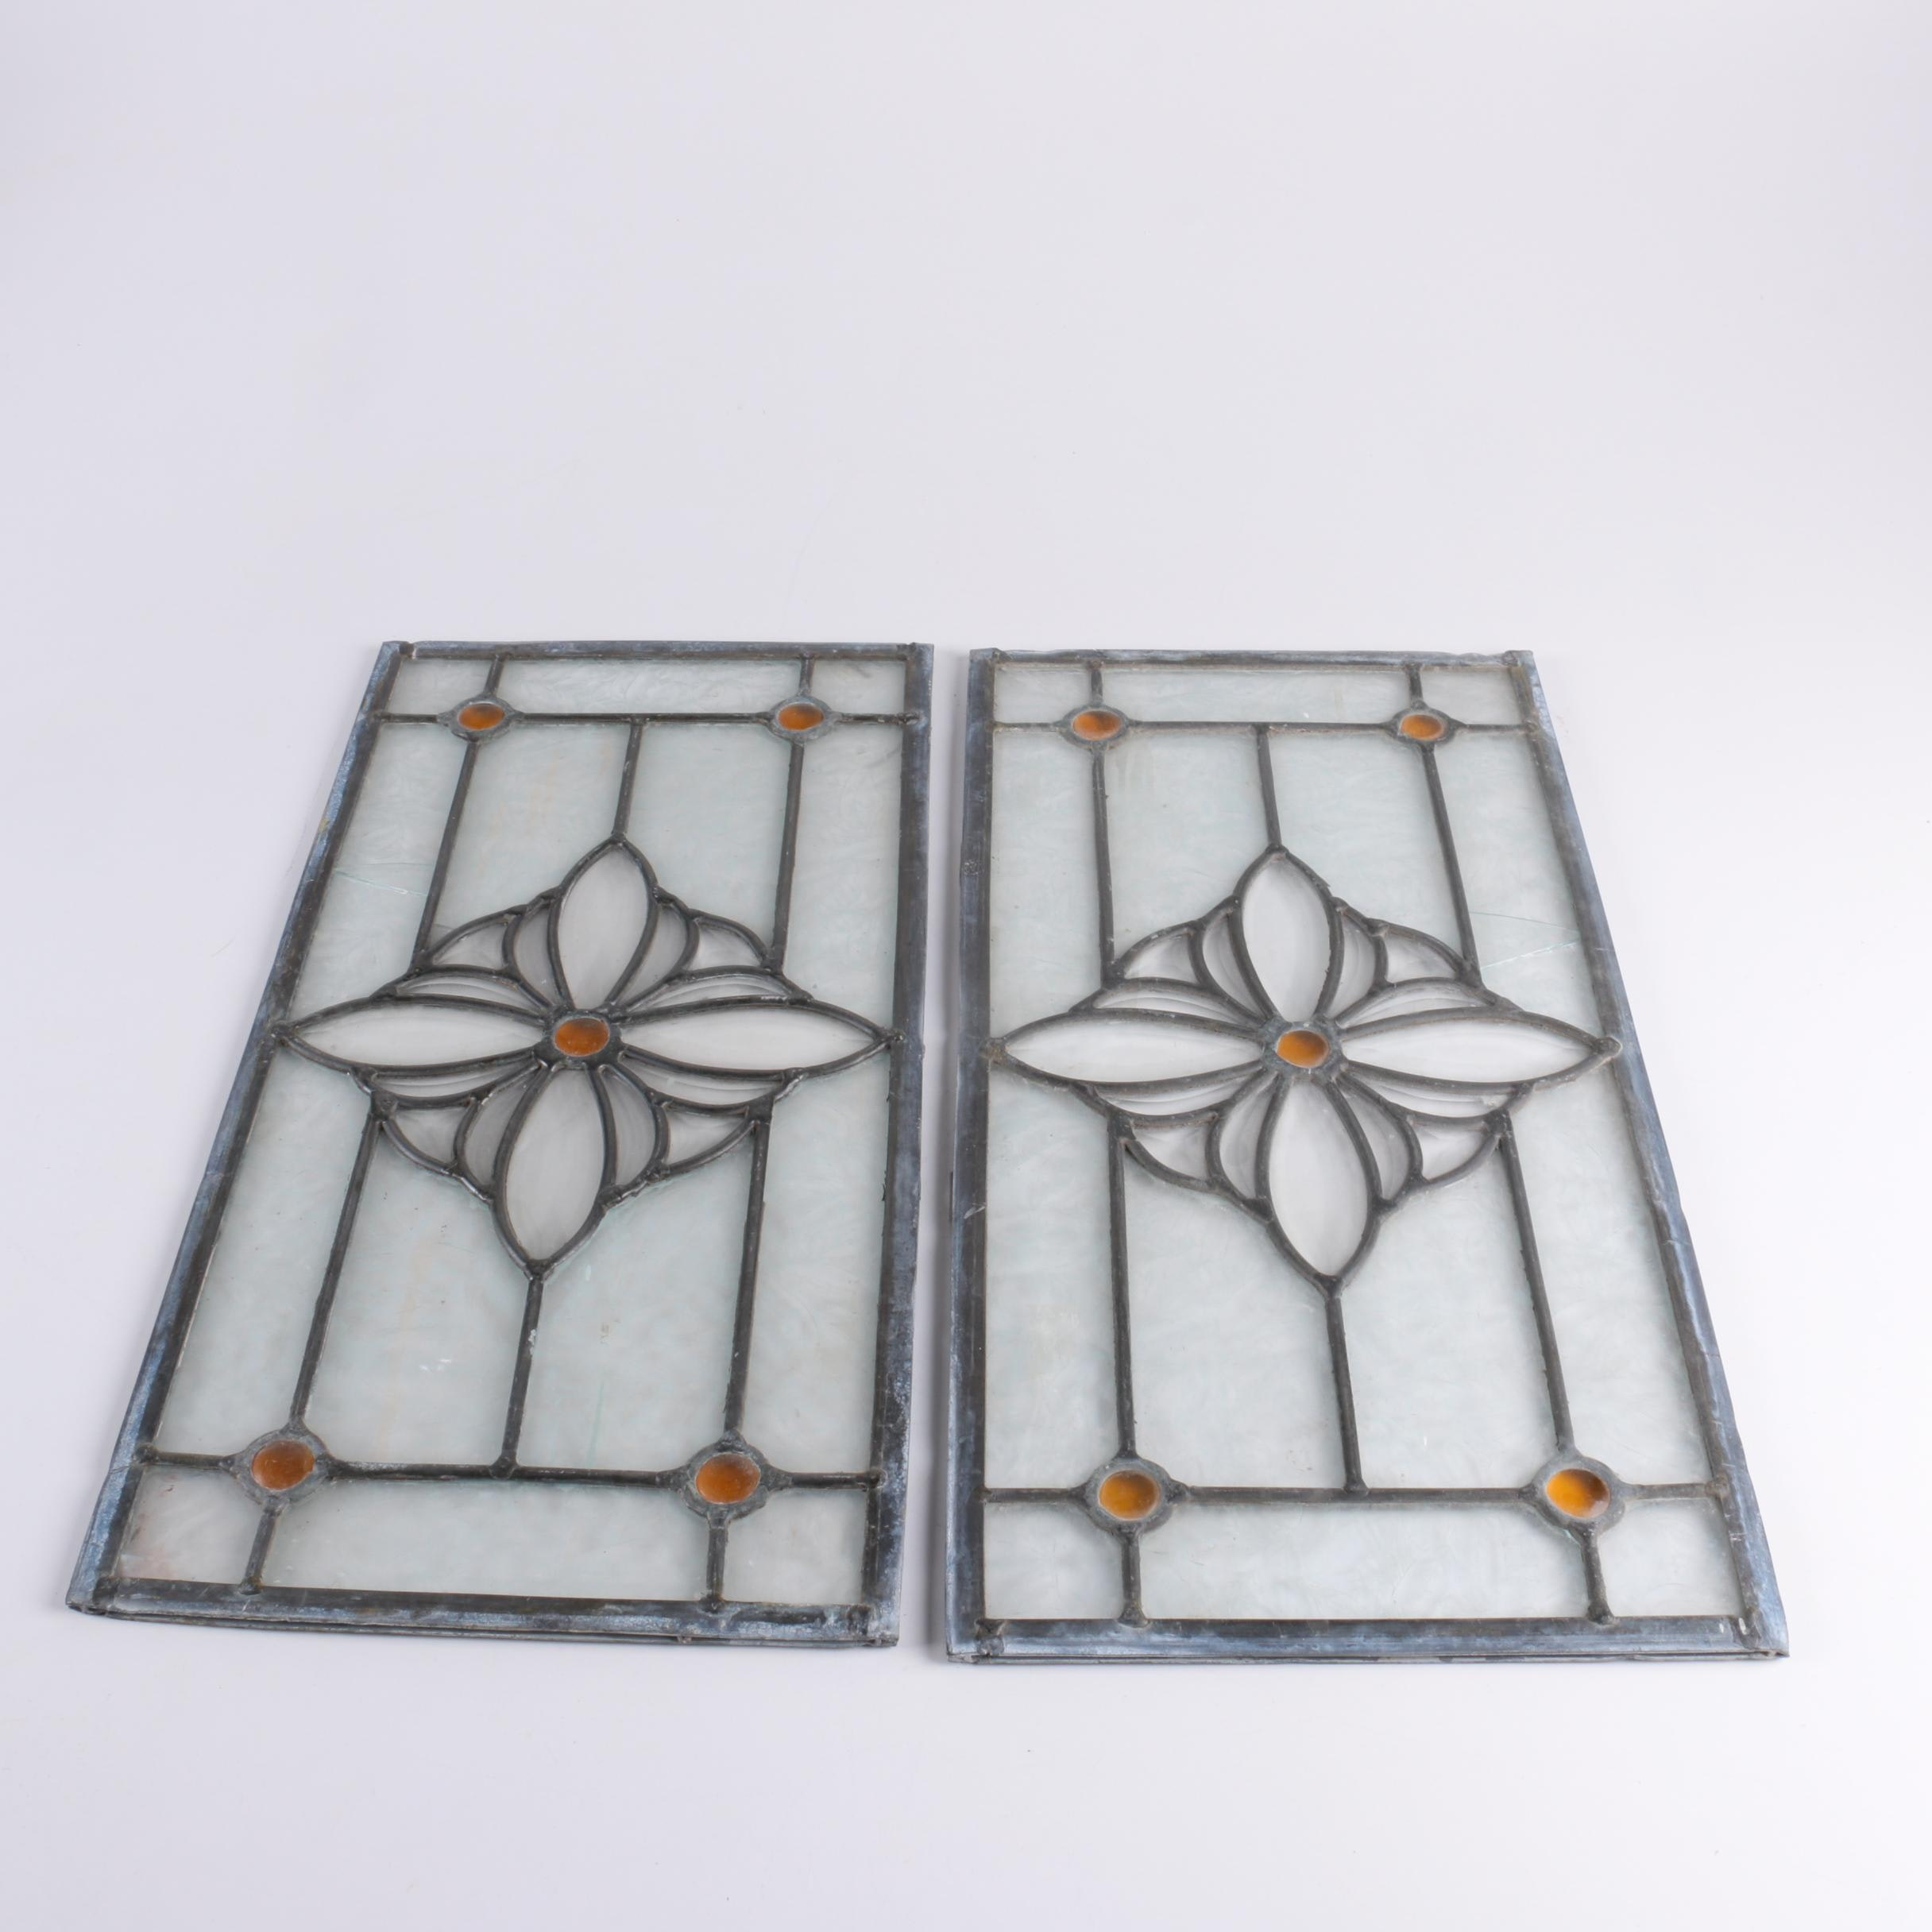 Pair of Leaded Glass Window Inserts